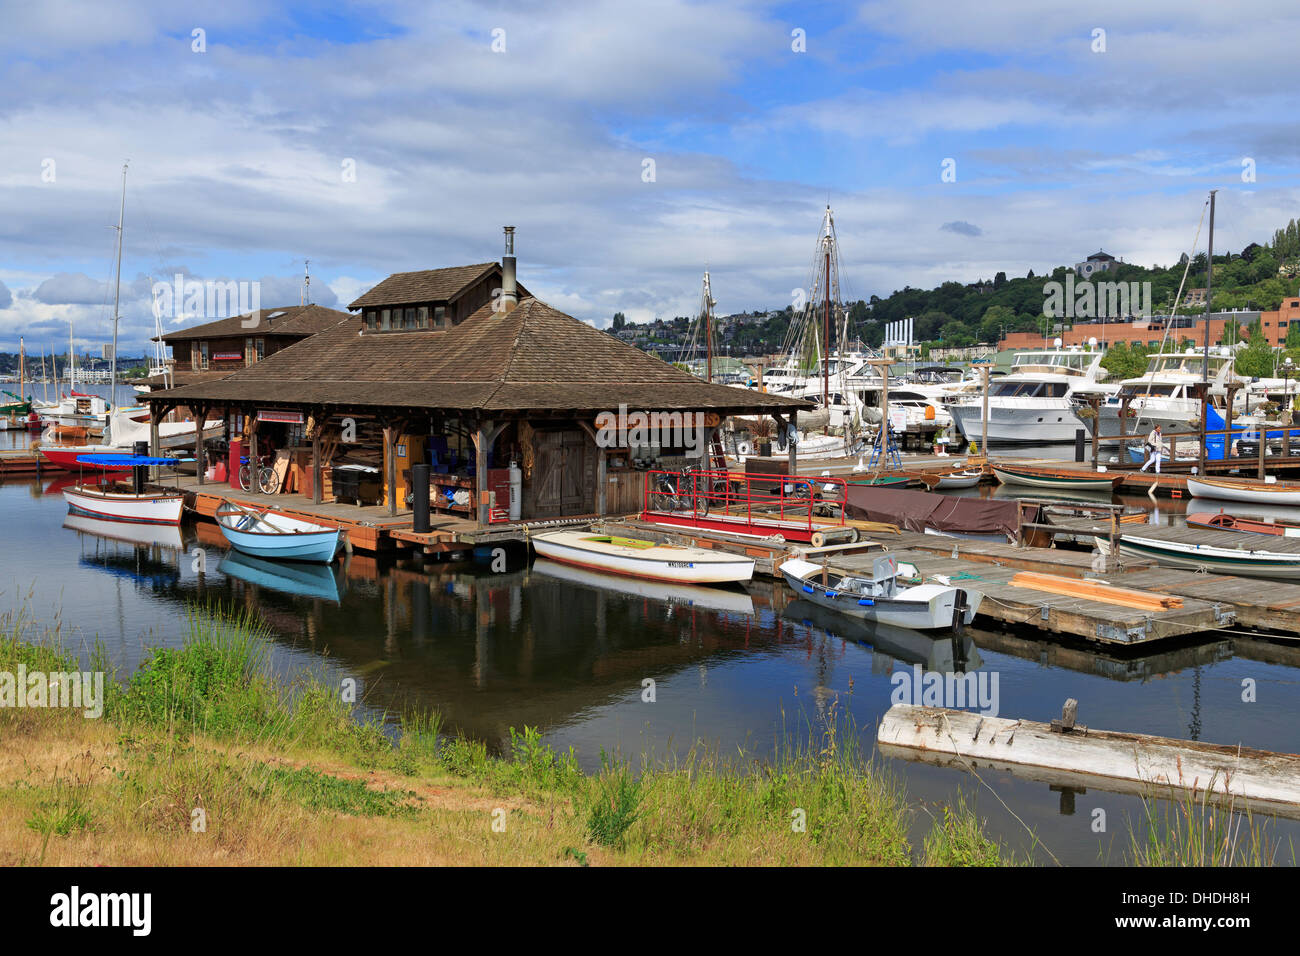 Center for Wooden Boats, Lake Union Park, Seattle, Washington State, United States of America, North America - Stock Image